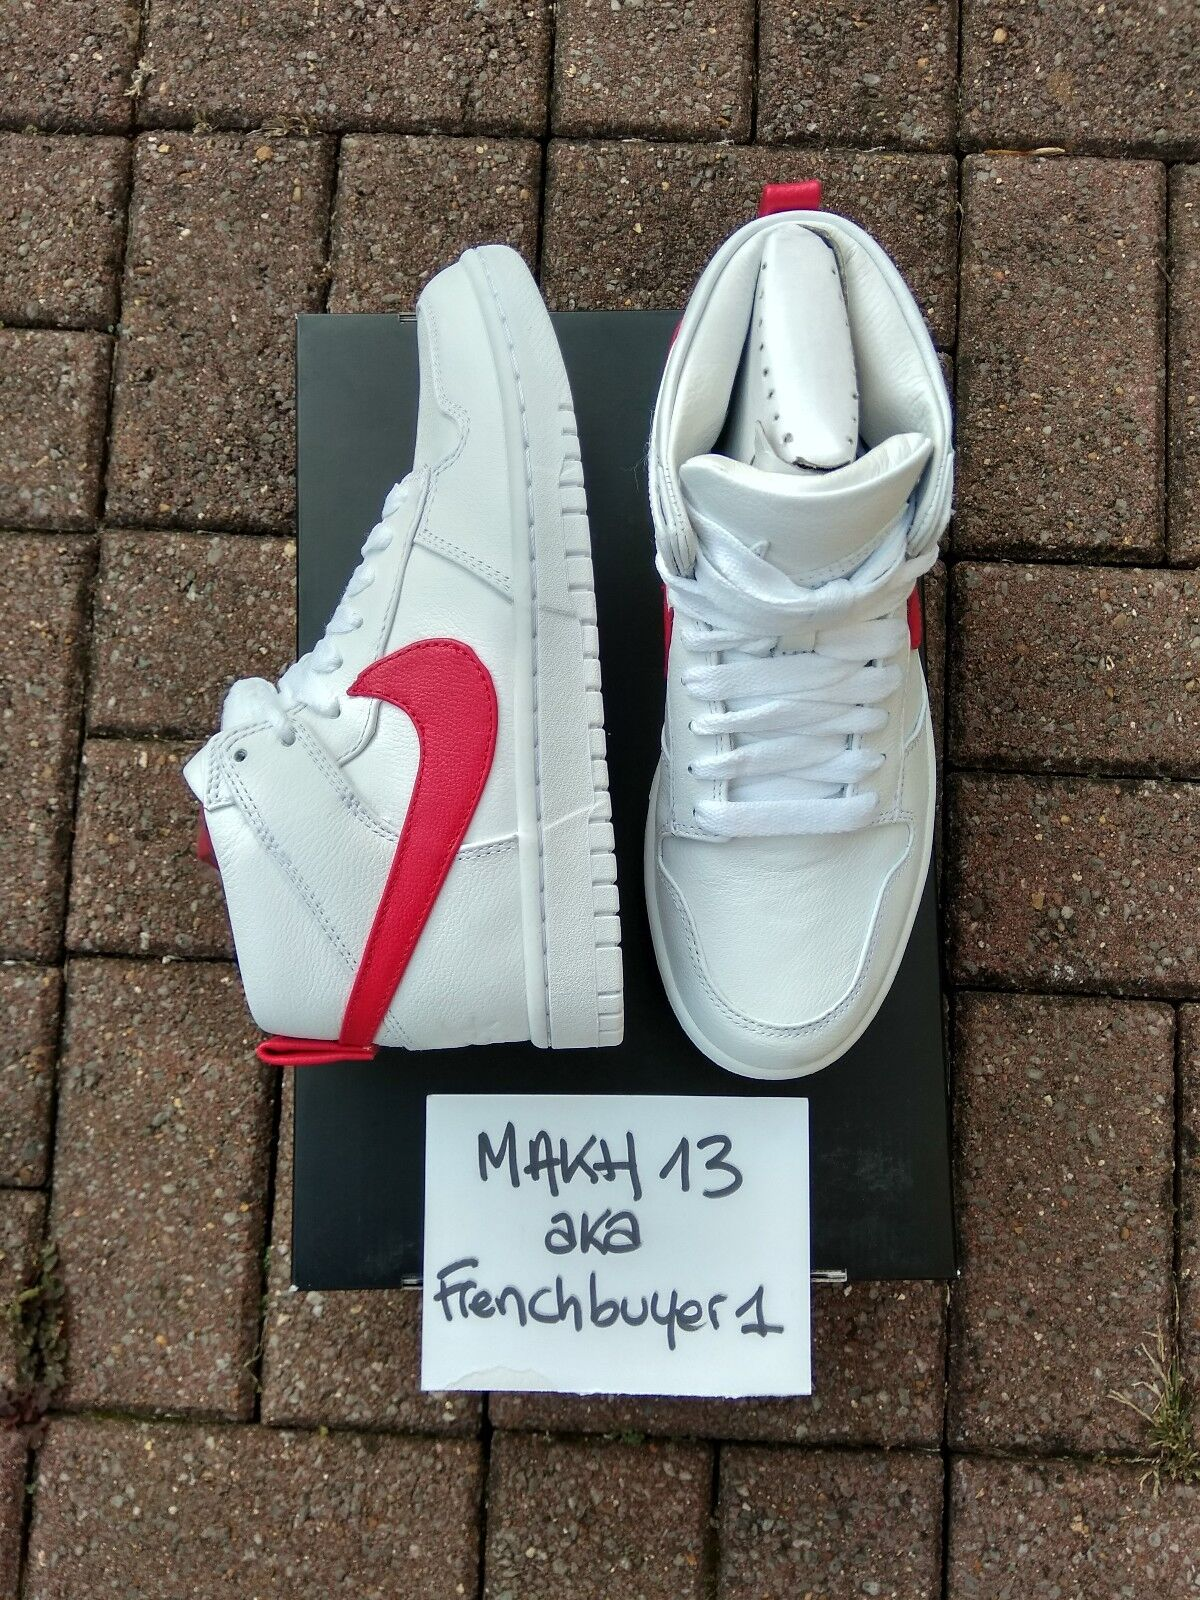 NIKE DUNK LUX CHUKKA / RT RICCARDO TISCI WHITE/DISTANCE RED 910088-100 DS sz.6US